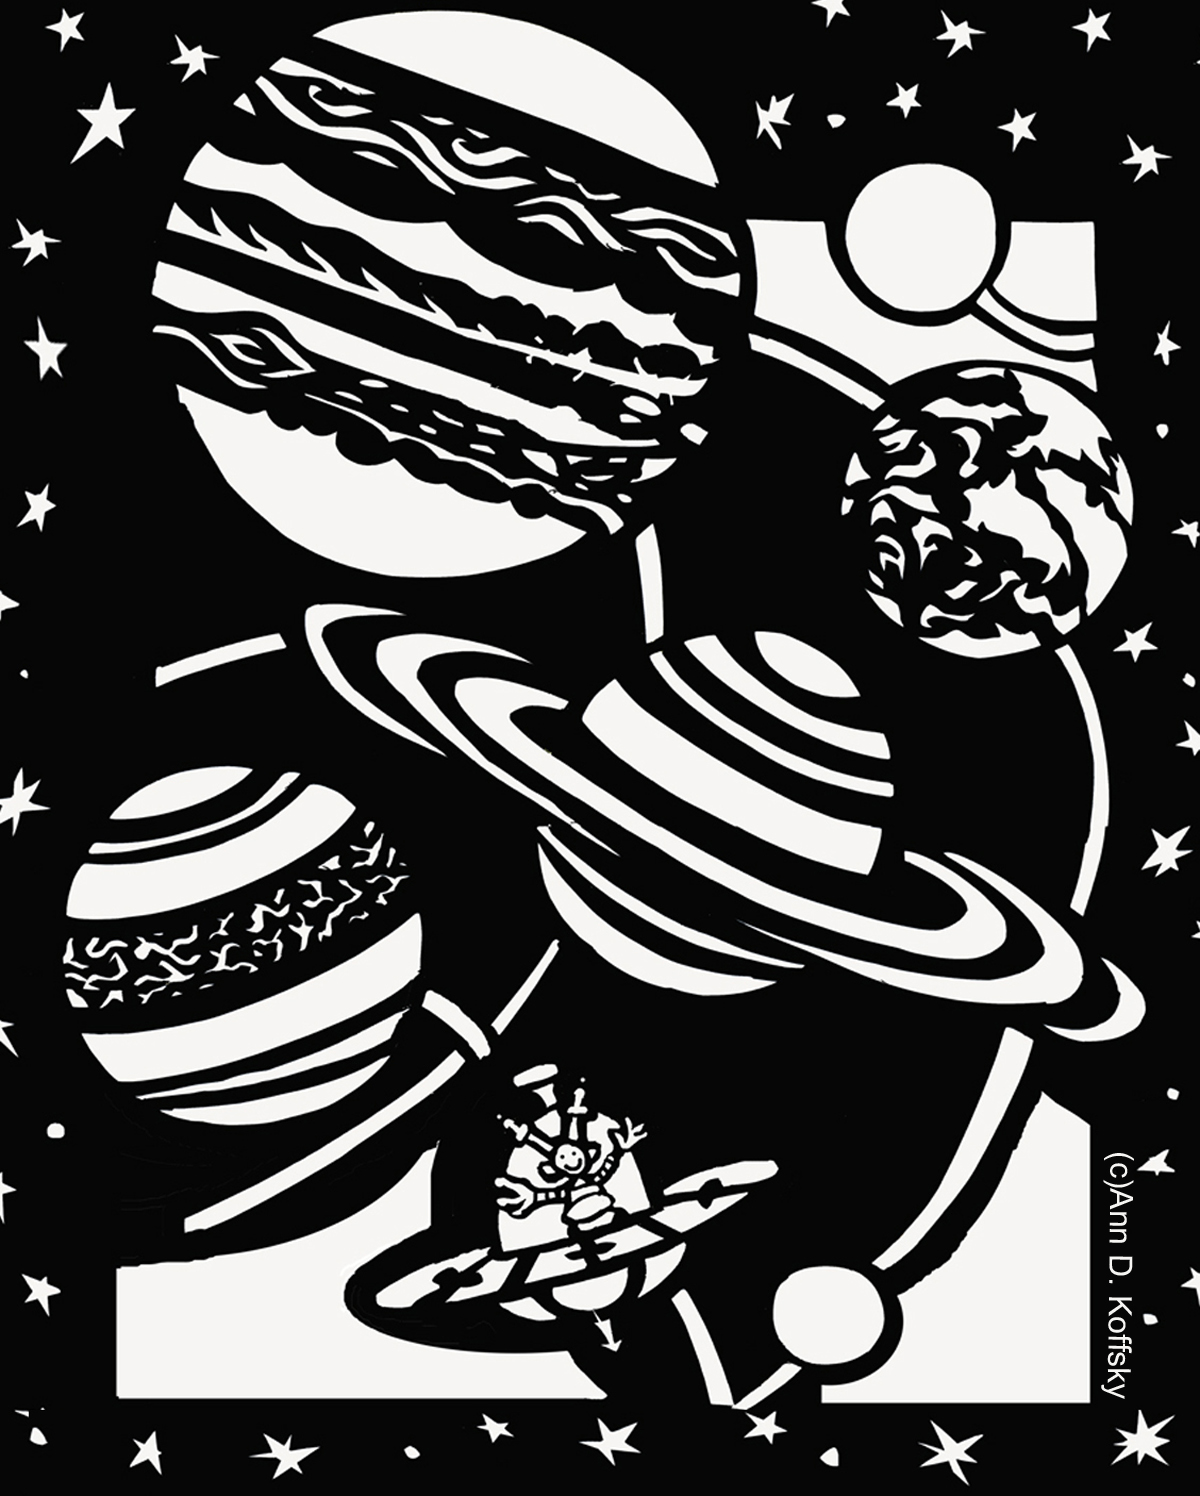 Outer Space Coloring Page | Ann D. Koffsky